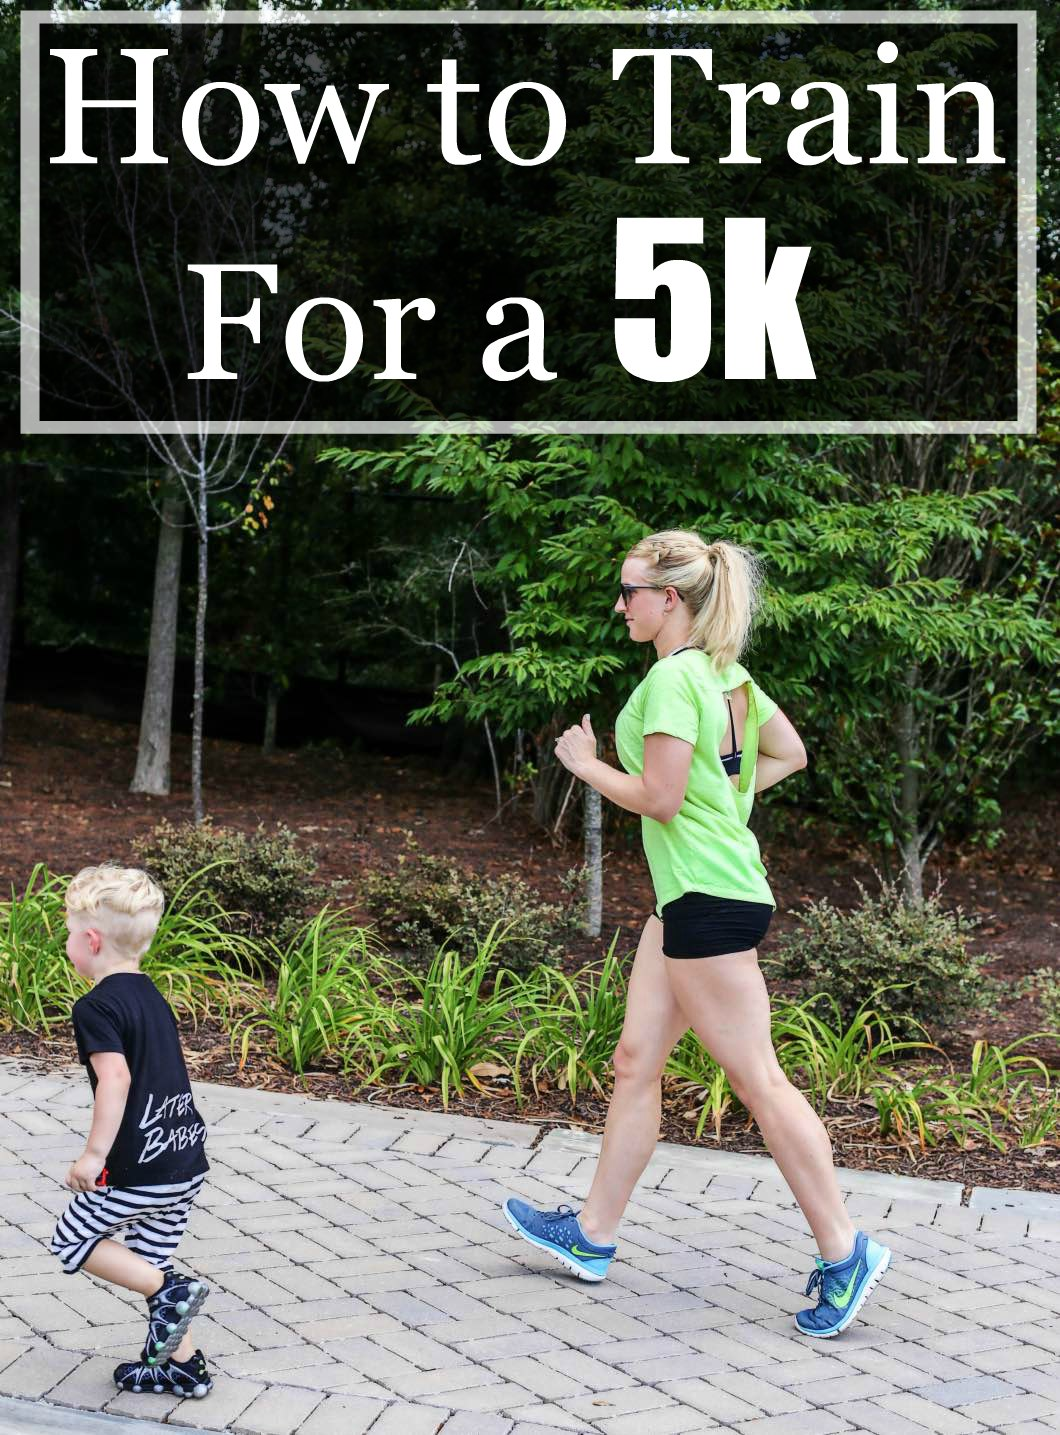 How to train for a 5k